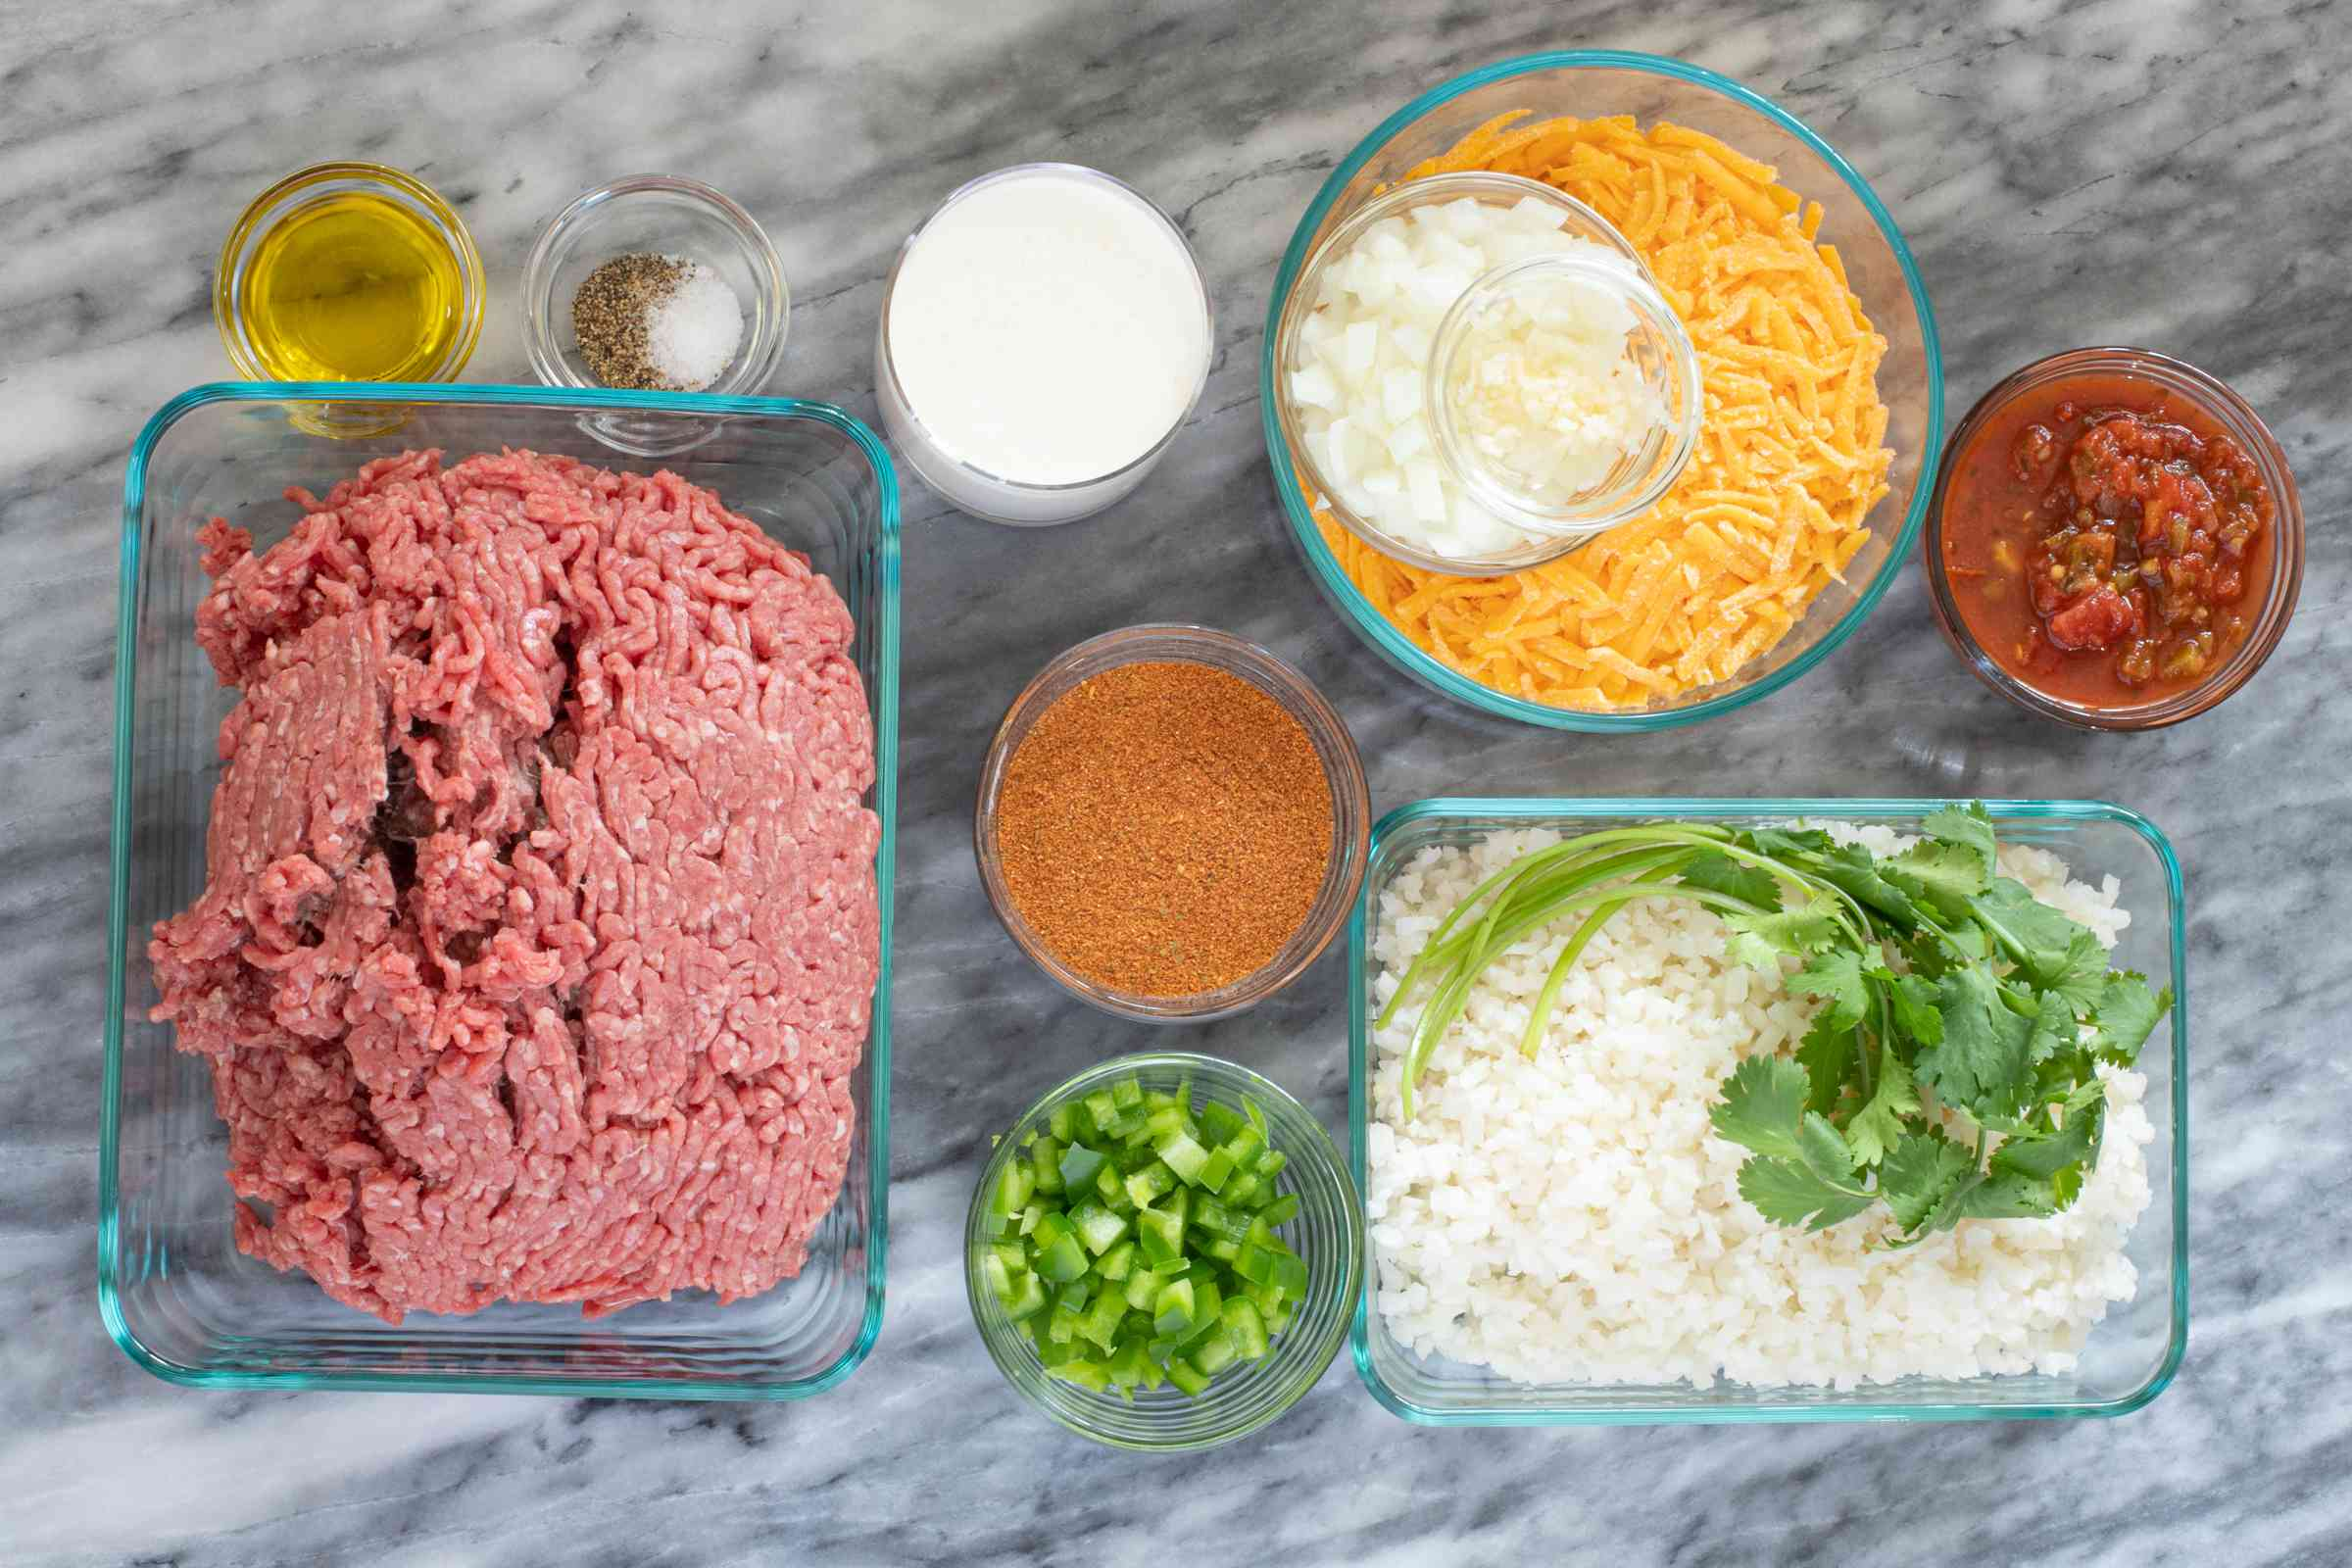 Ingredients for a keto taco casserole.